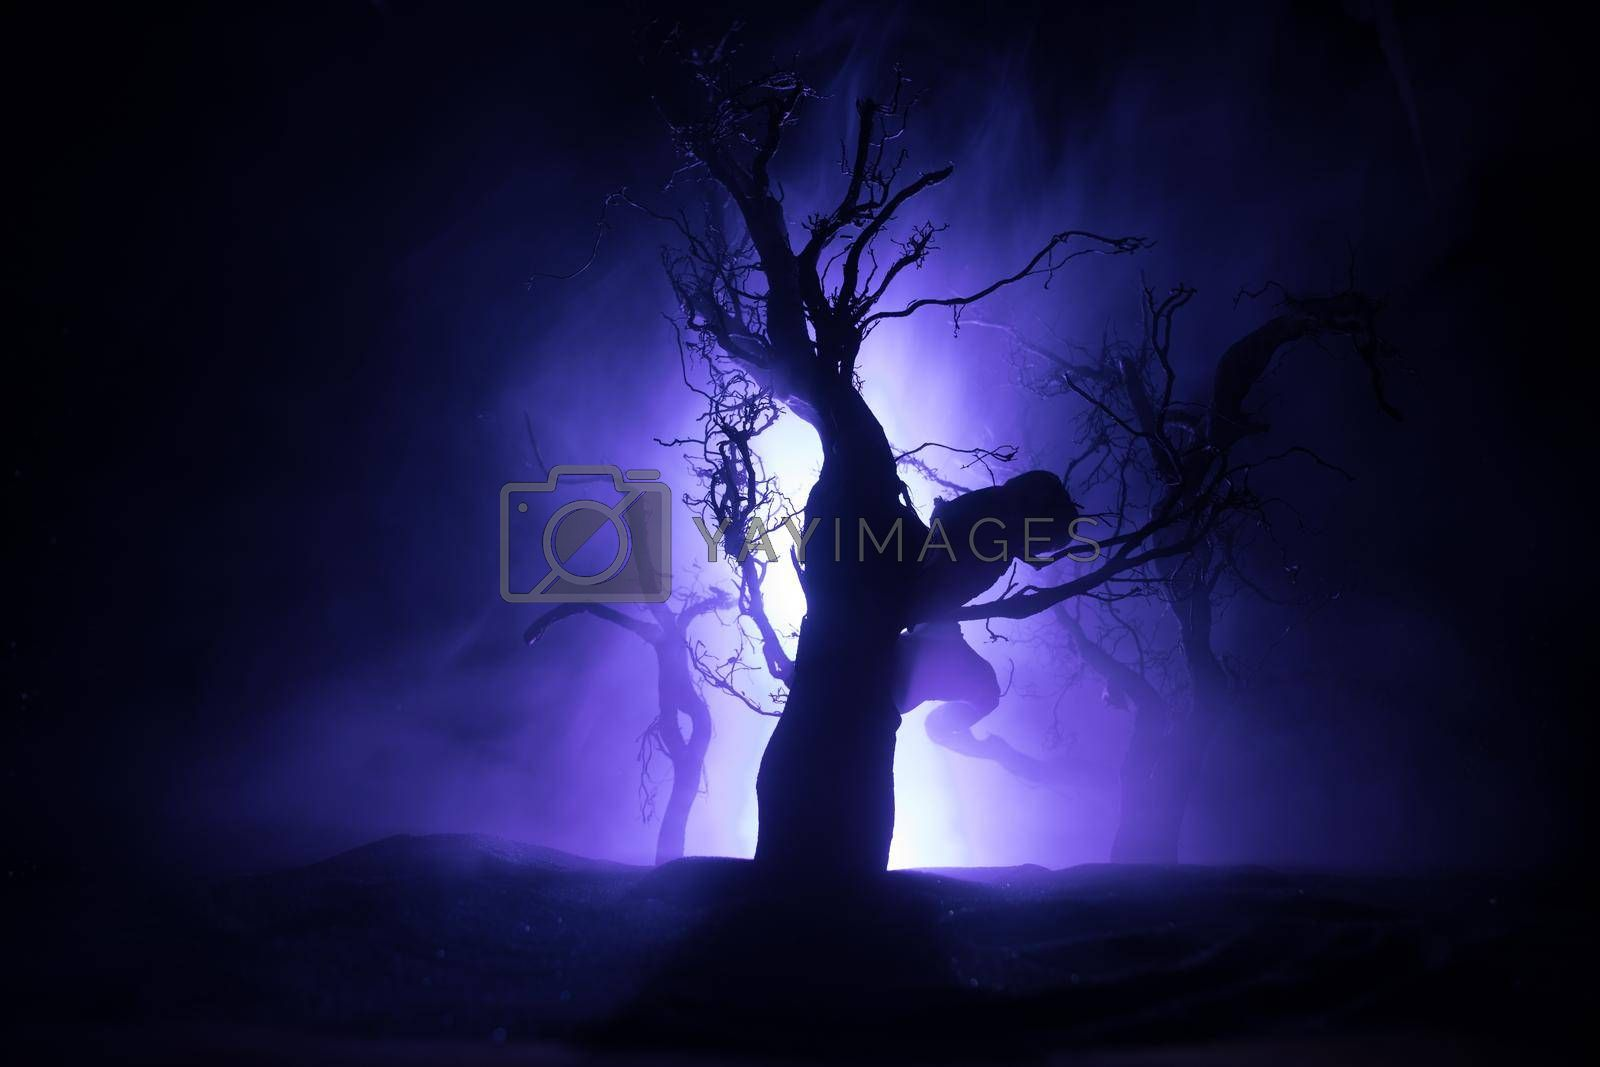 Spooky dark landscape showing silhouettes of trees in the swamp on misty night. Night mysterious forest in cold tones . Tree branches against the full moon and dramatic cloudy night sky